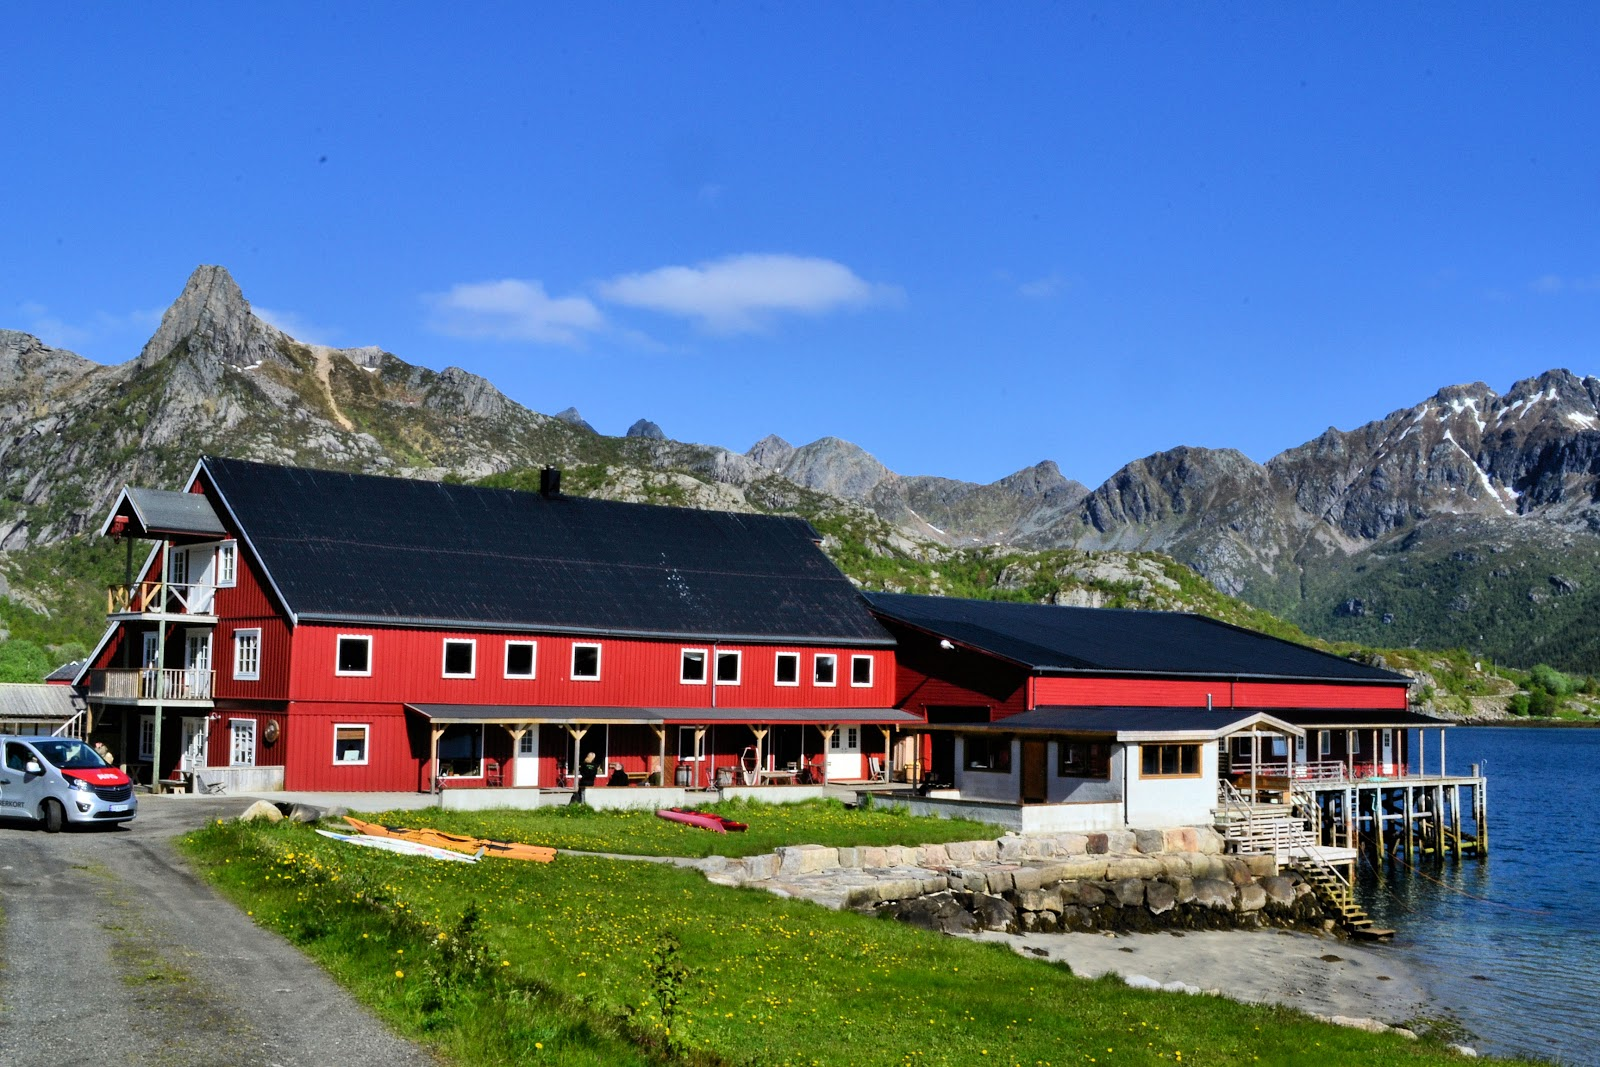 Kalle I Lofoten Brygge - the grand gathering place.